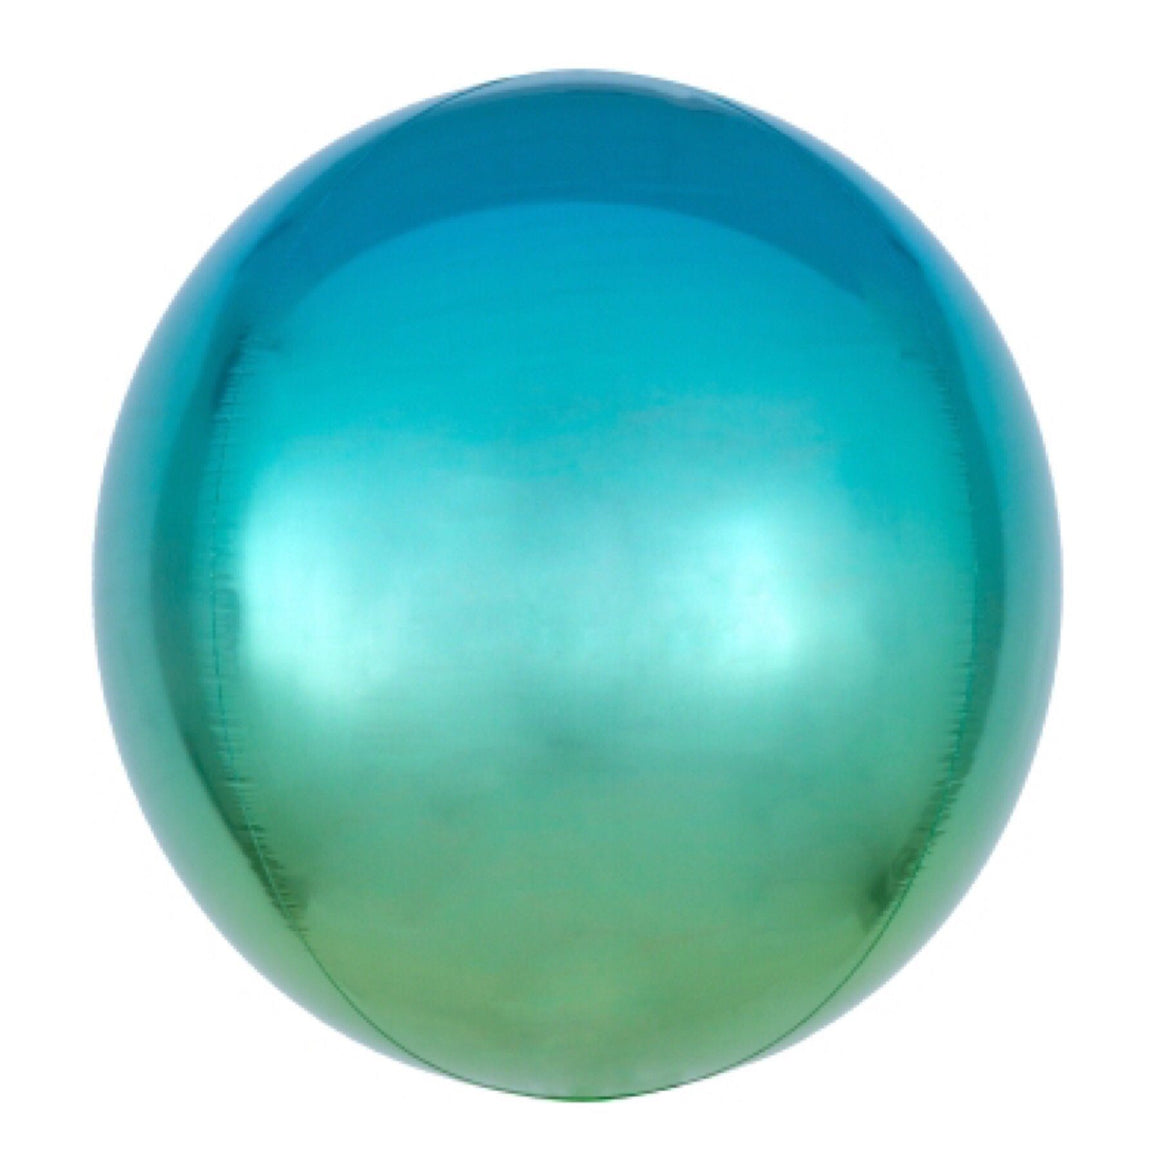 "BALLOON BAR - 16"" ORBZ ROUND OMBRE BLUE GREEN, Balloons, Anagram - Bon + Co. Party Studio"